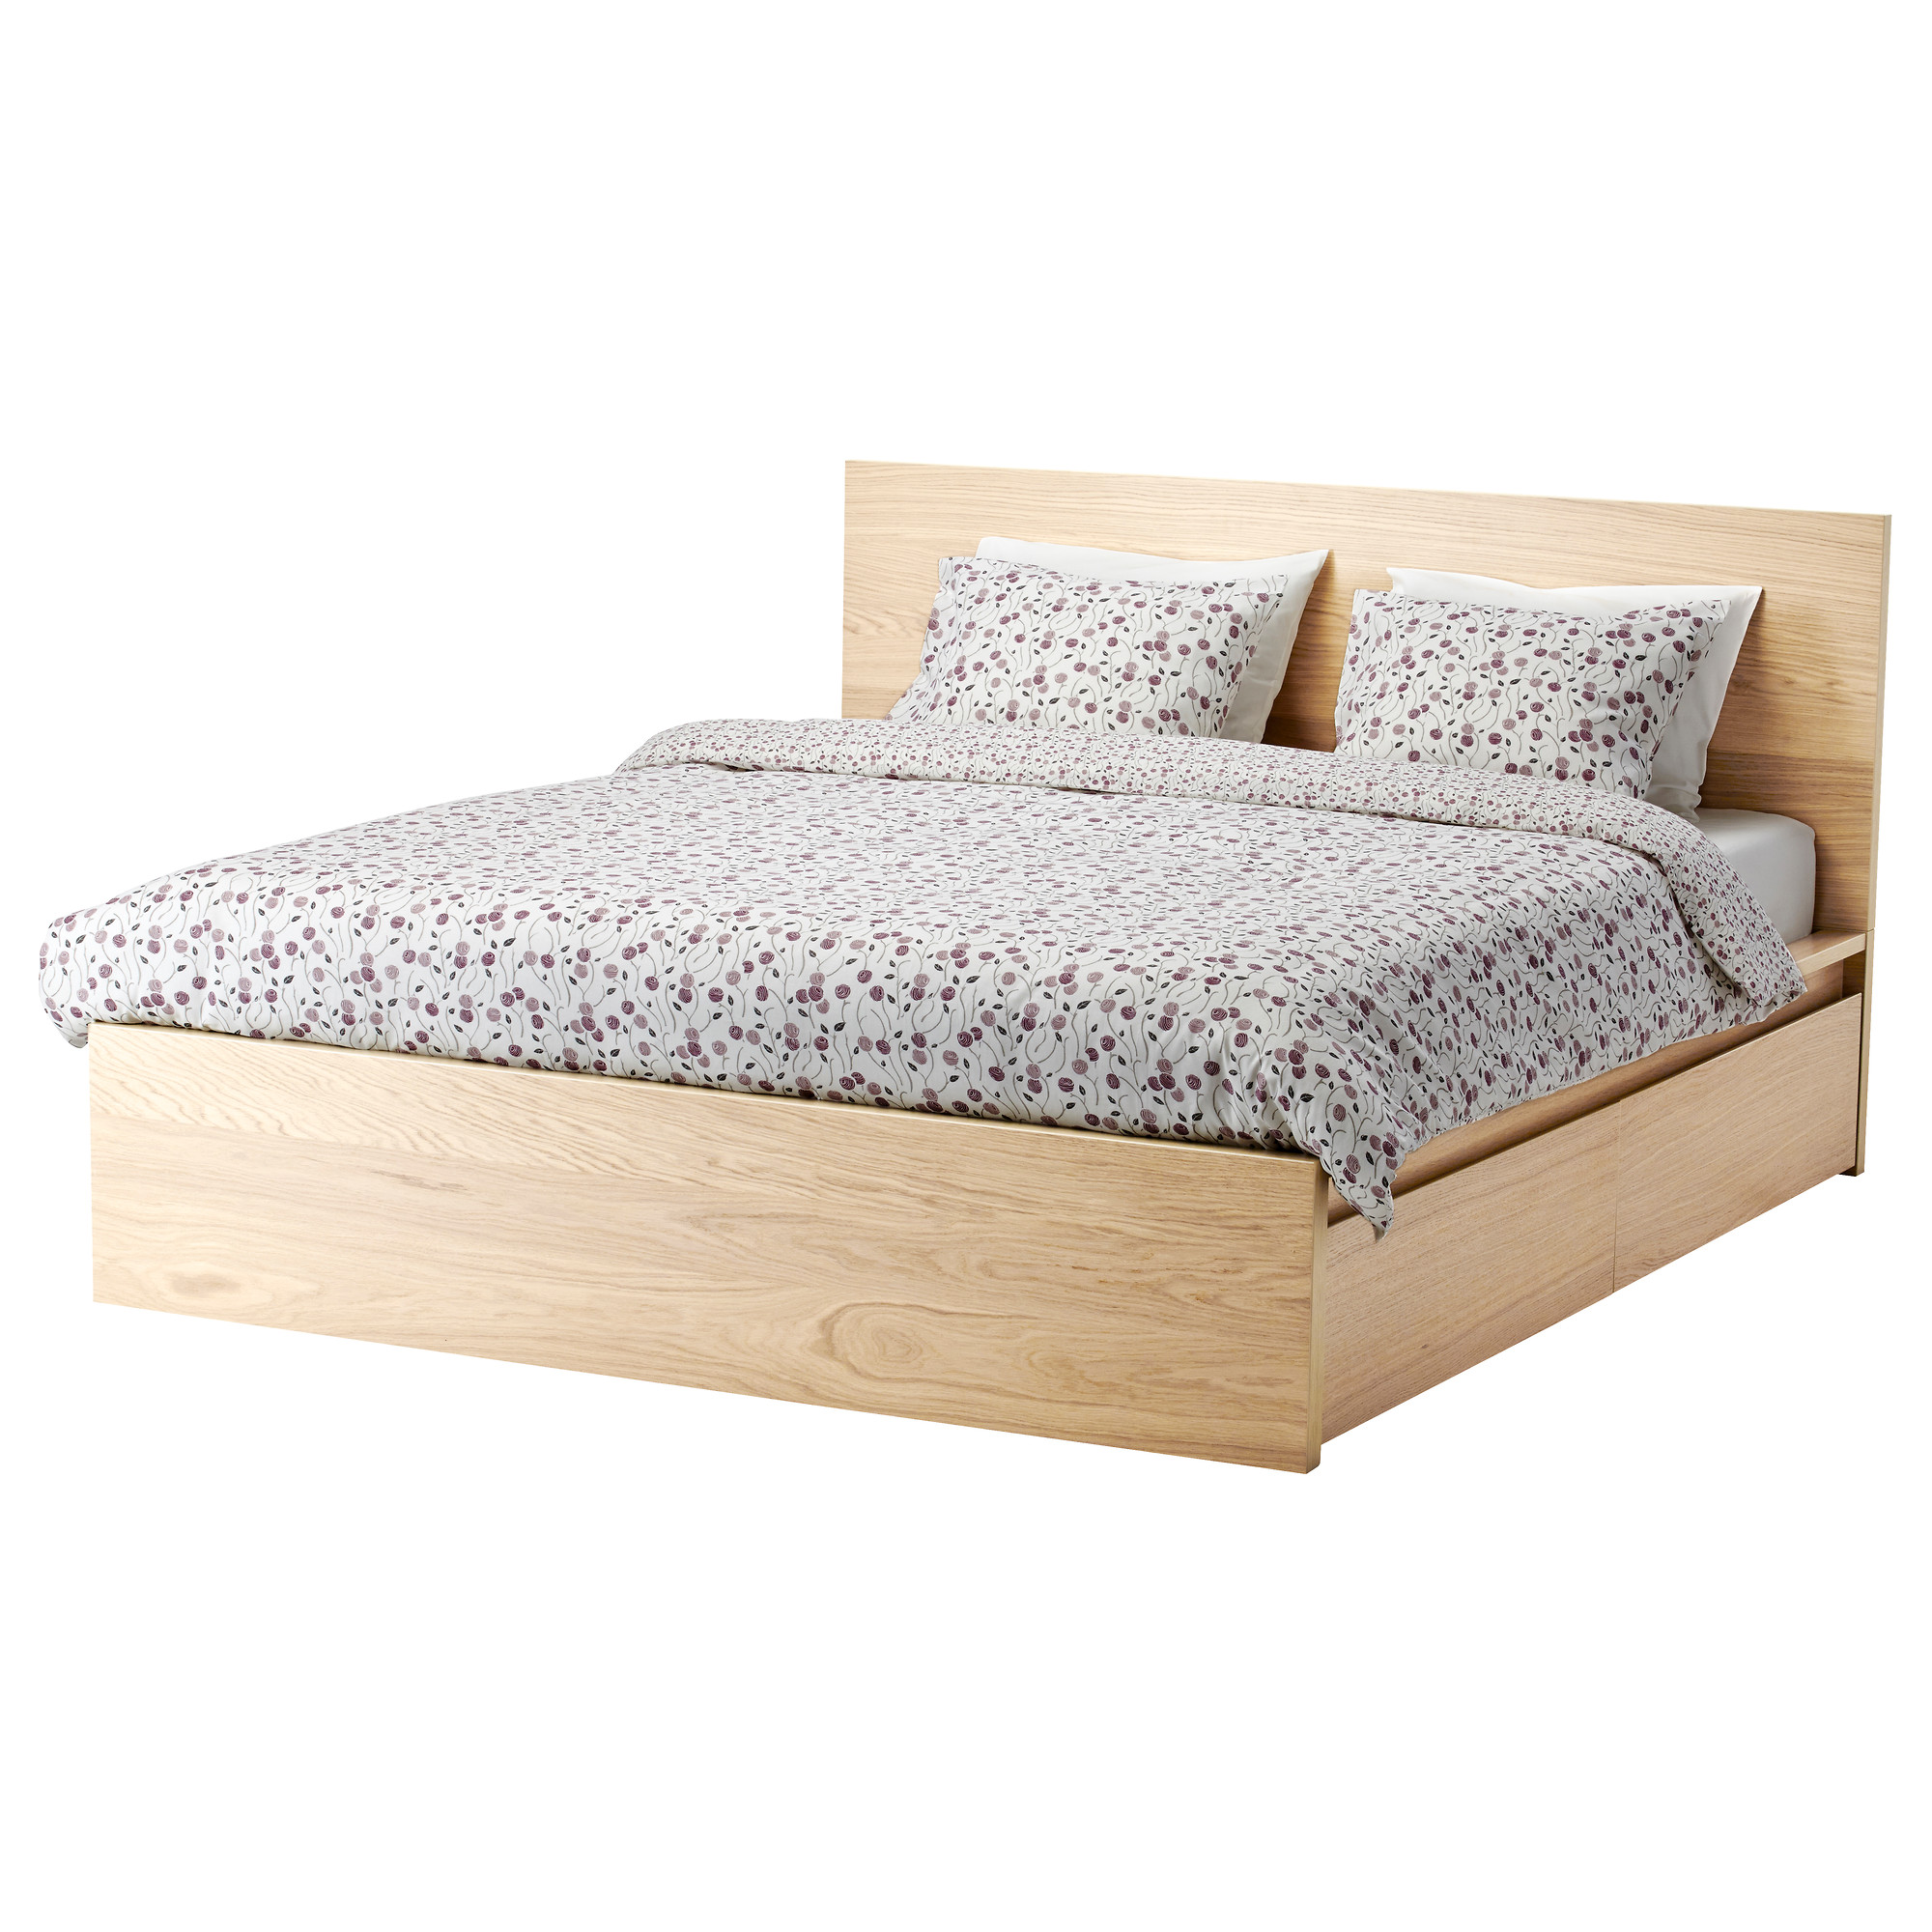 Bed frame with storage - Bed Frame With Storage 12